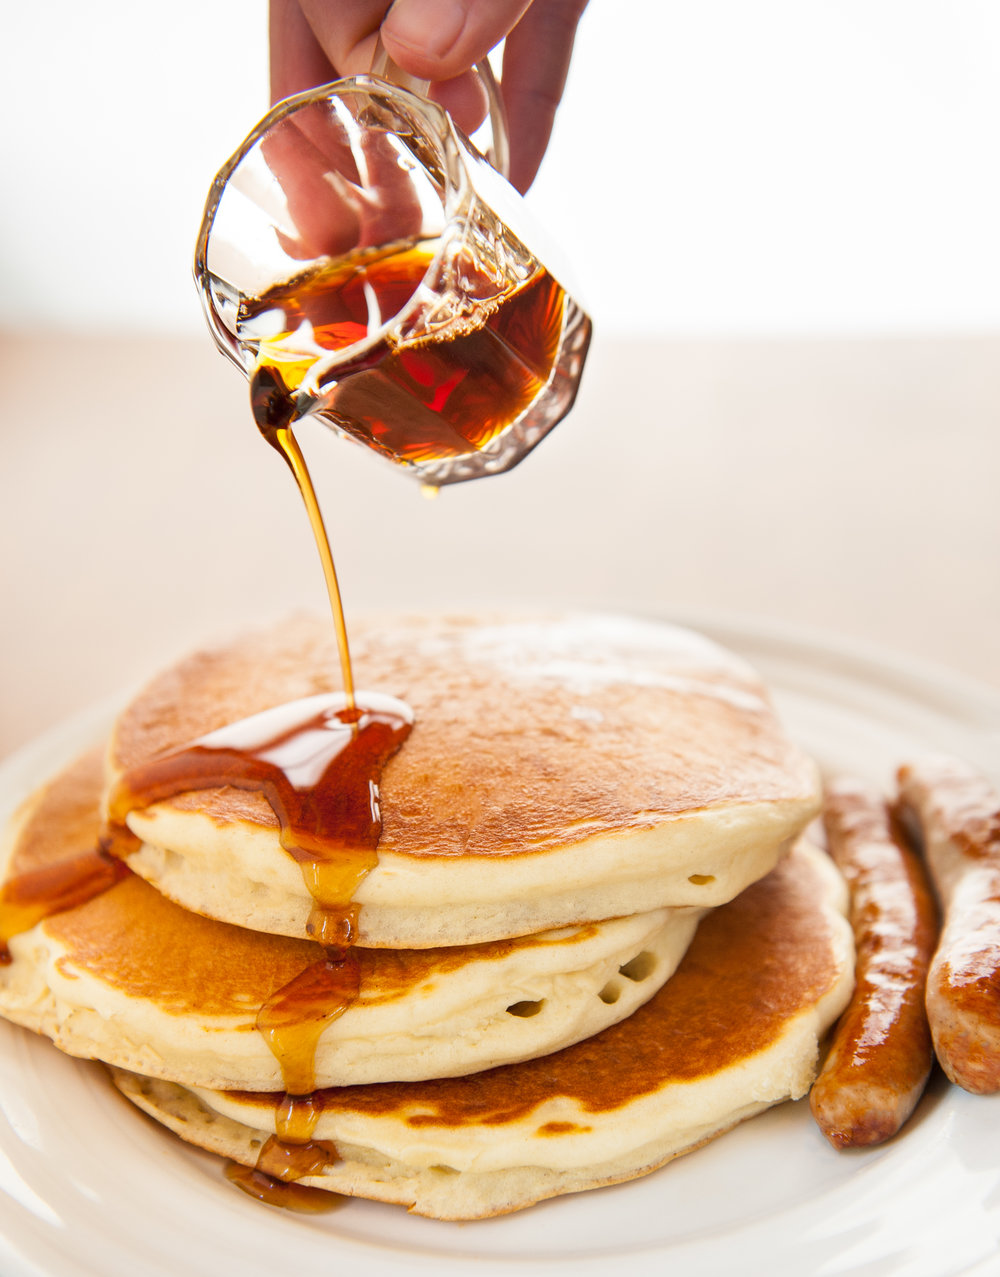 If it's too early in the day for pie, enjoy these in-season beauties by ordering a stack of hot-off-the-griddle pancakes served with our famous applesauce.